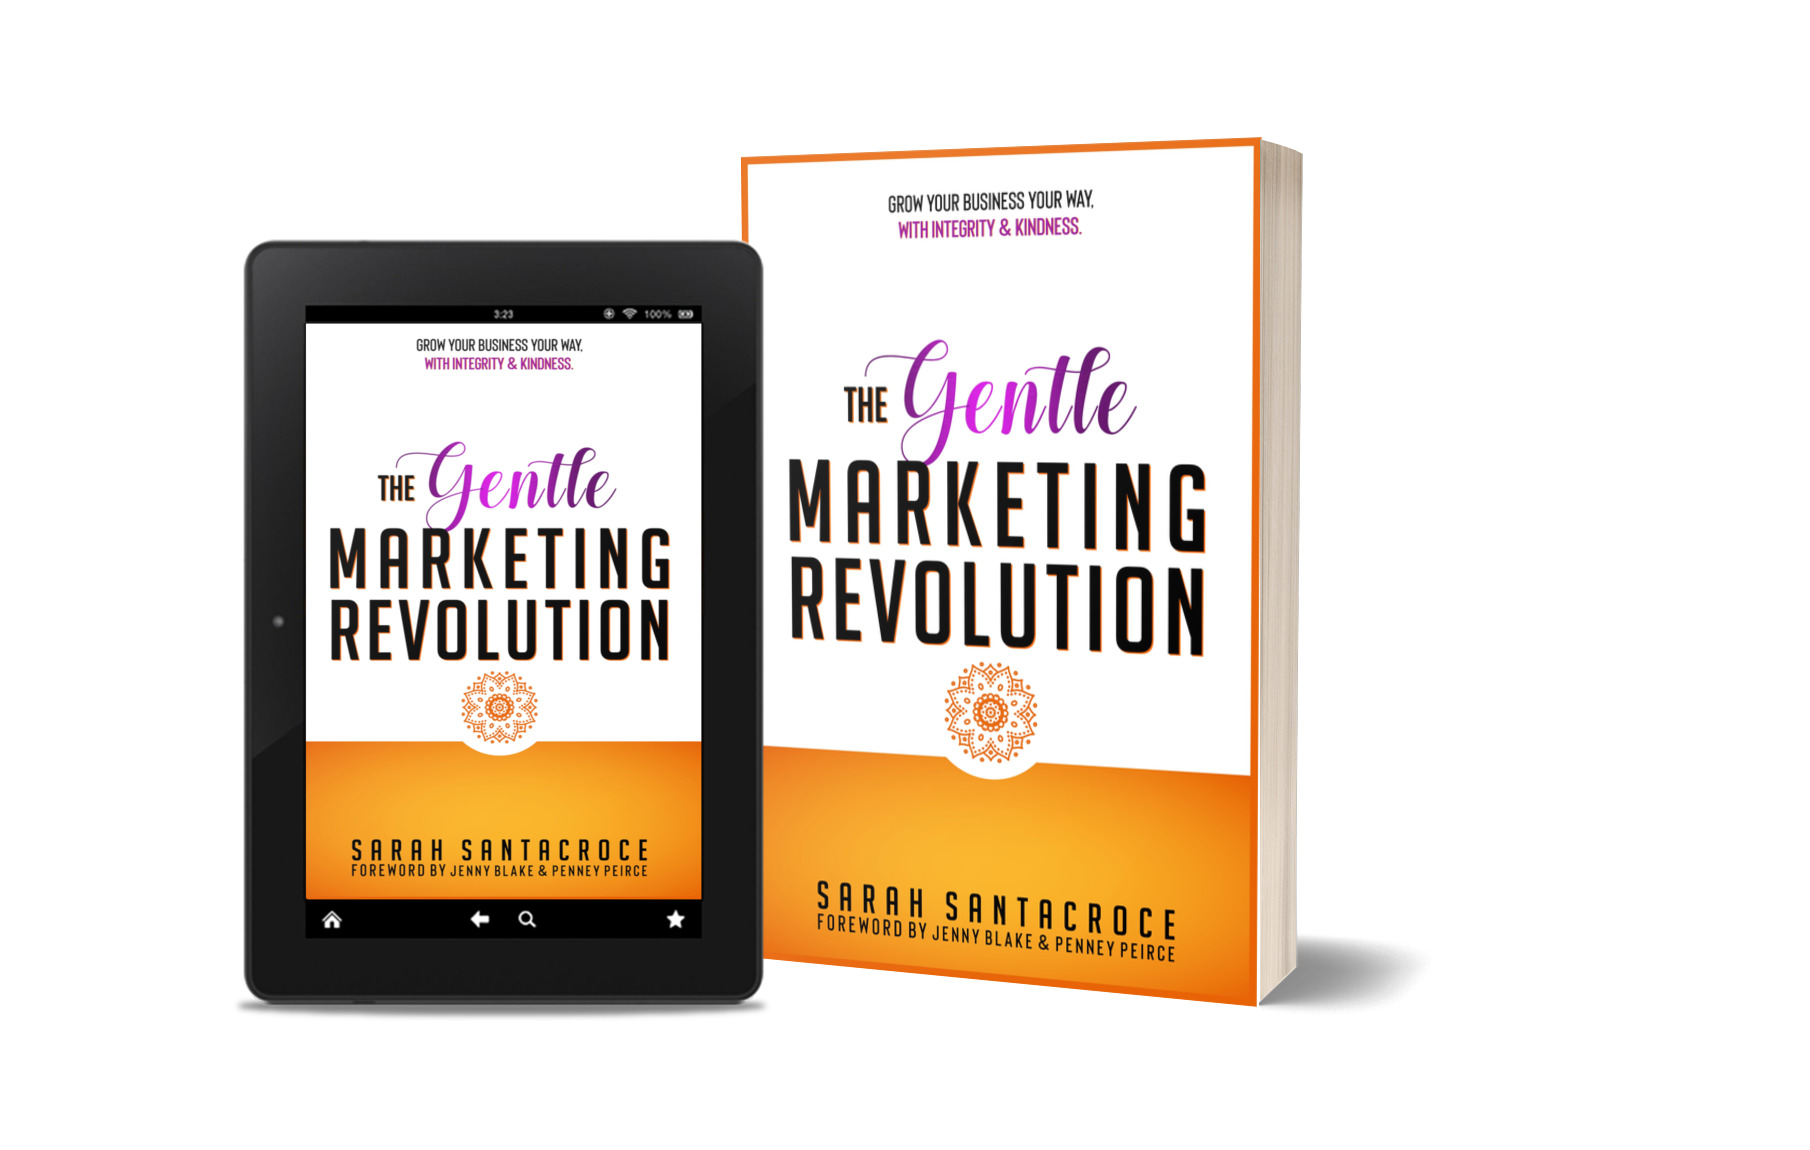 The Gentle Marketing Revolution - A Book And Movement Launched Their Crowdsourcing Campaign On Kickstarter